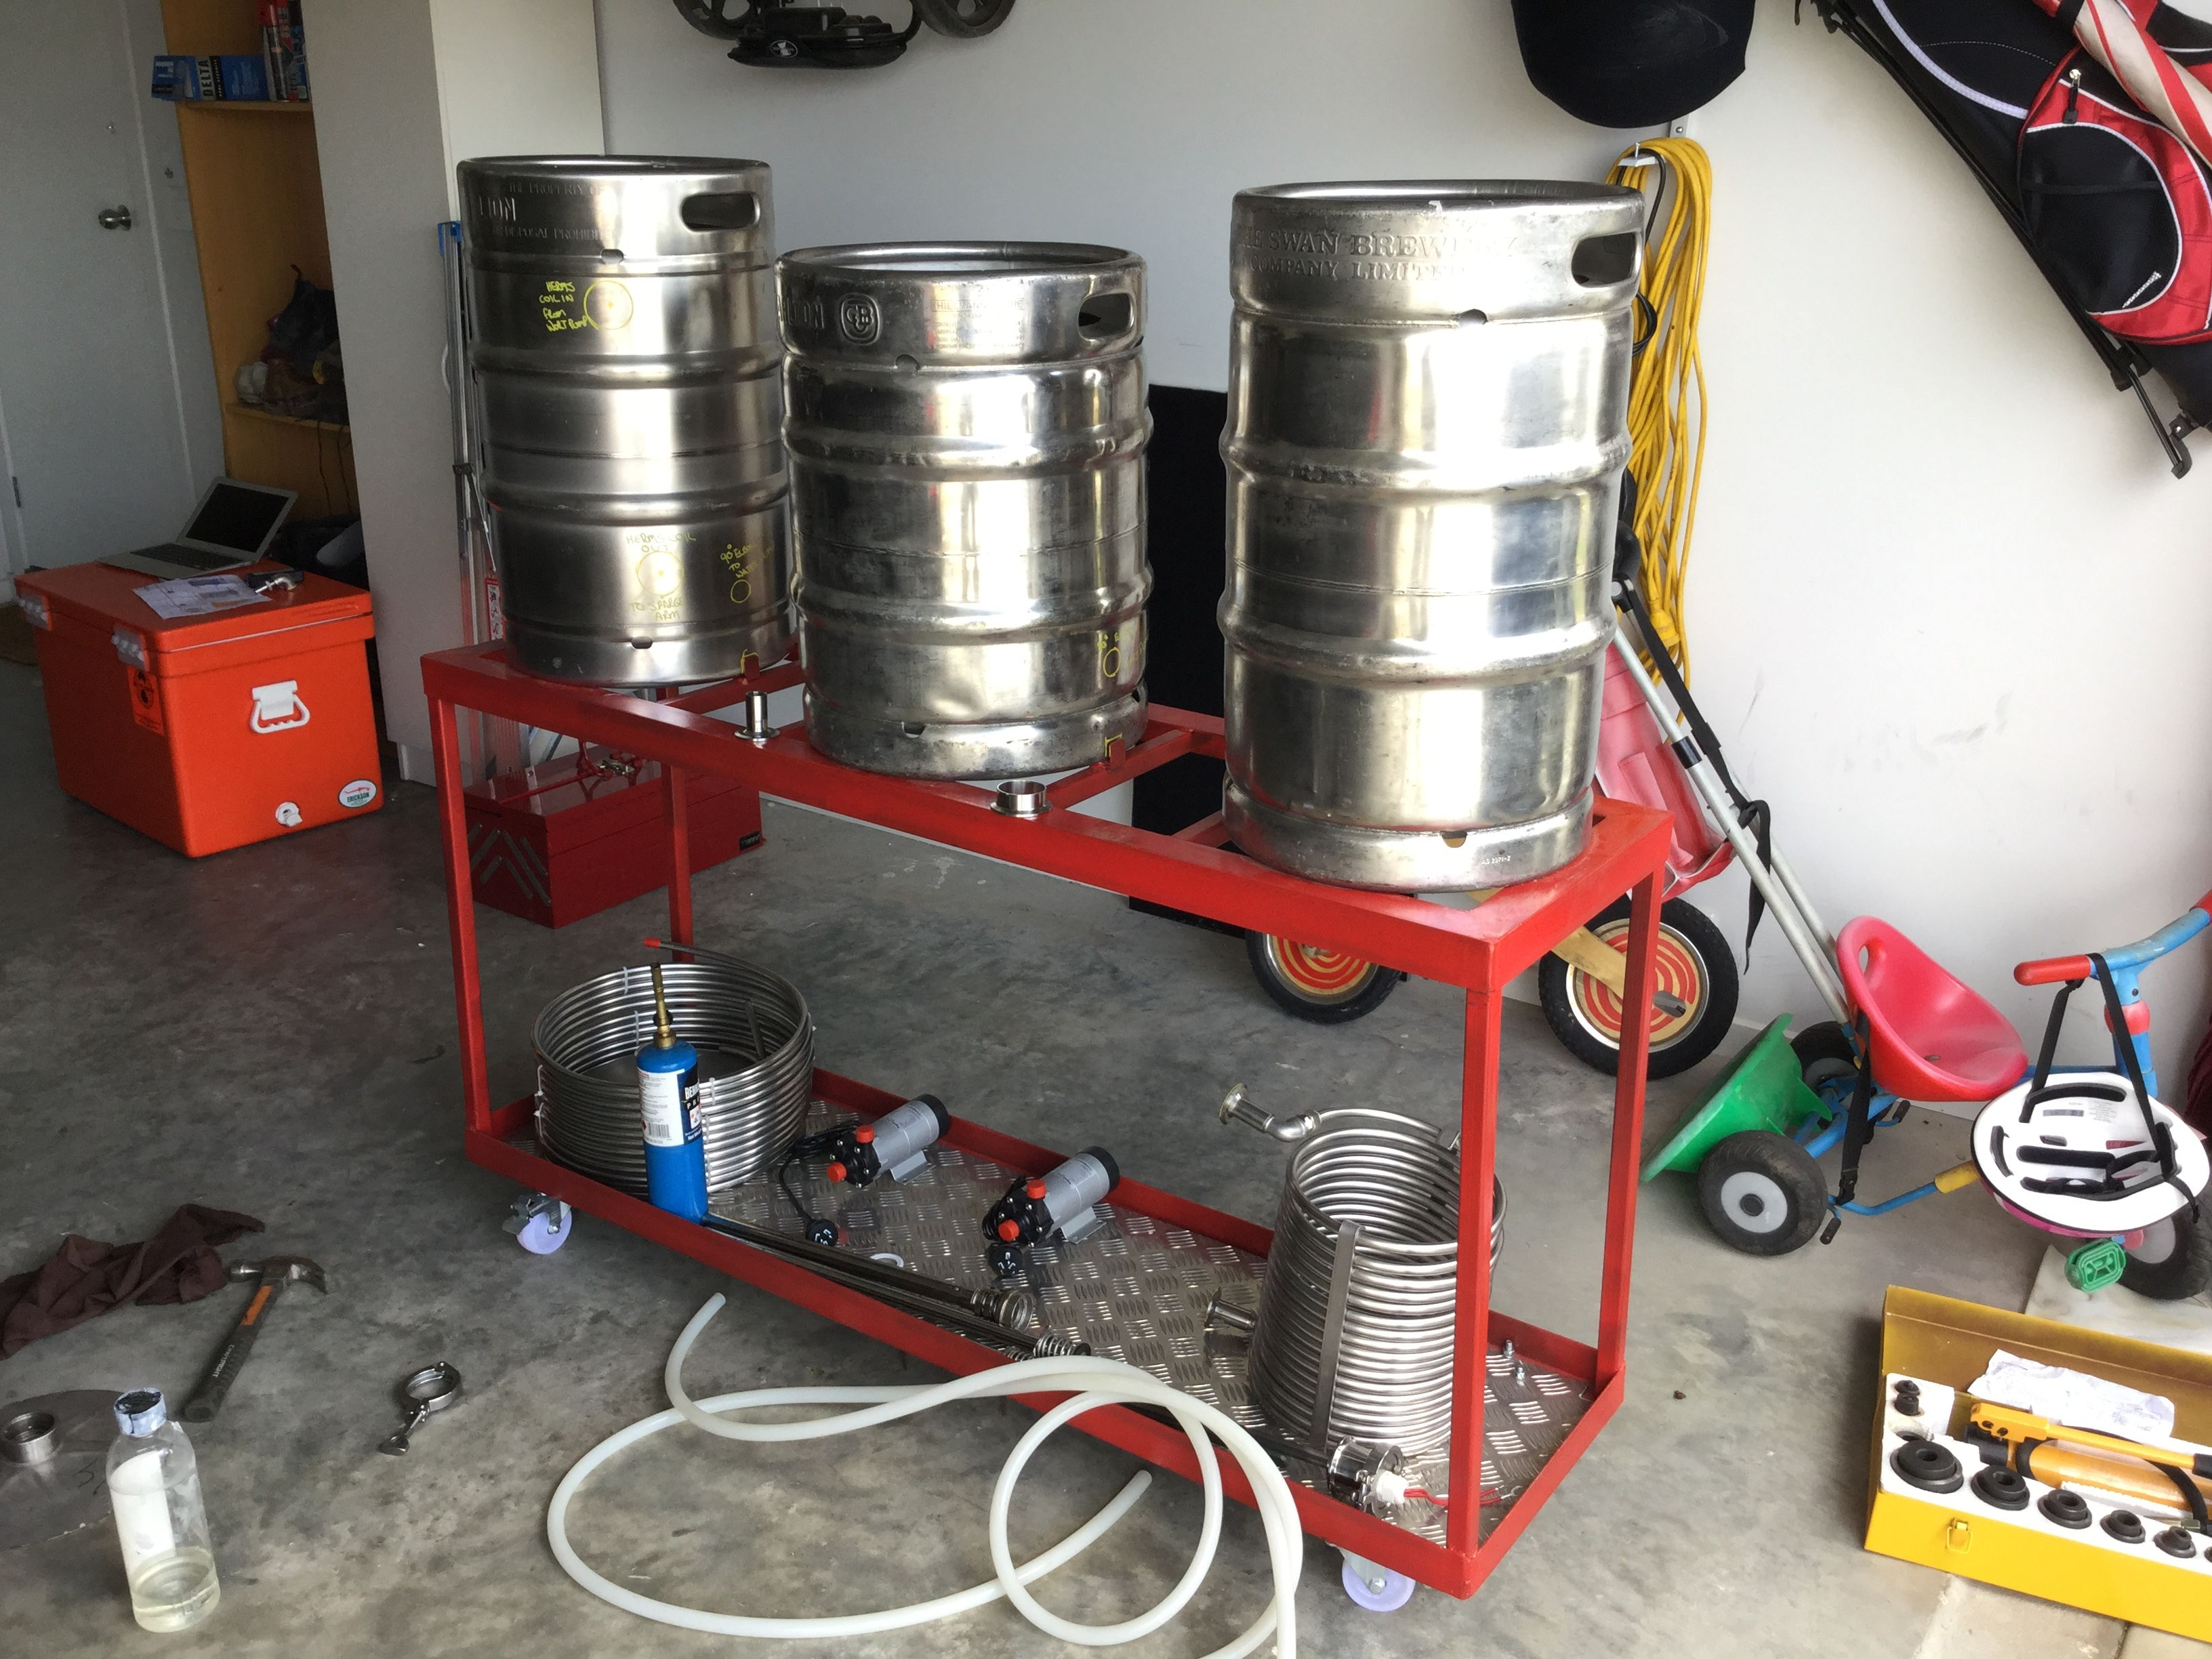 Building a HERMS brew rig